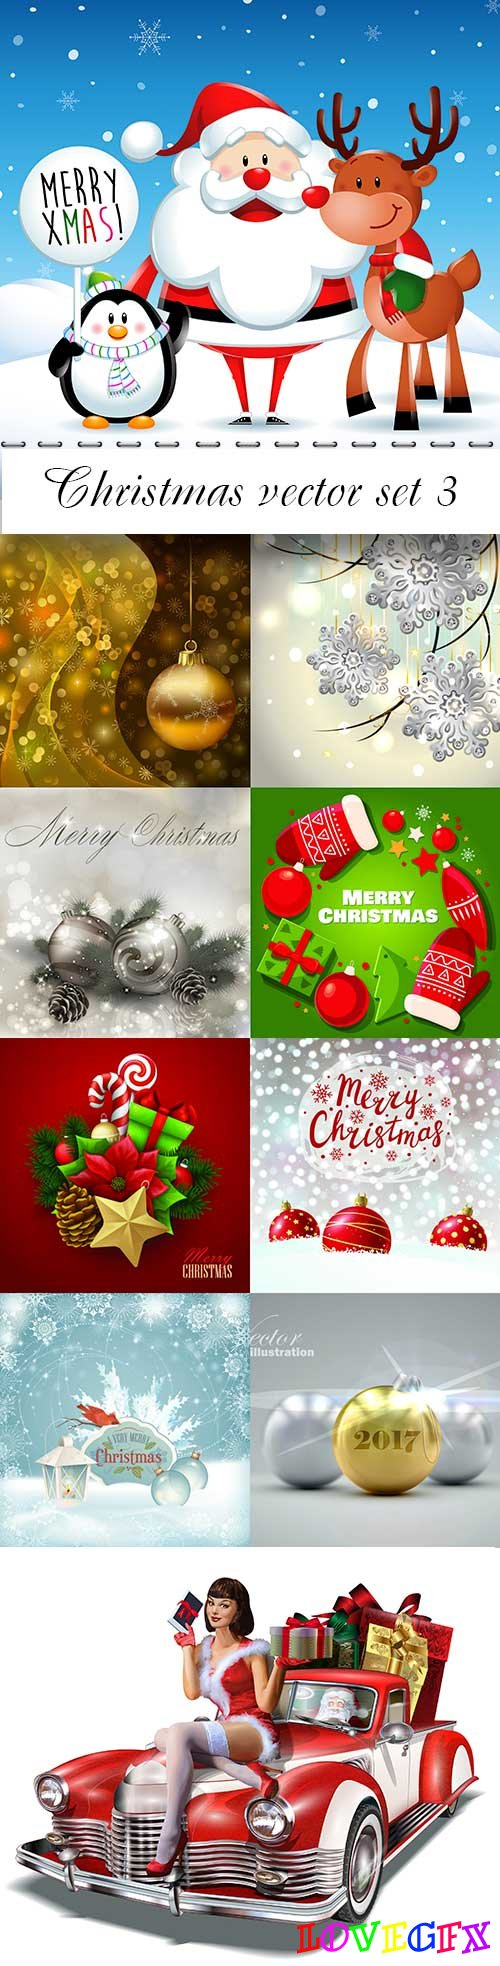 Christmas vector set 3